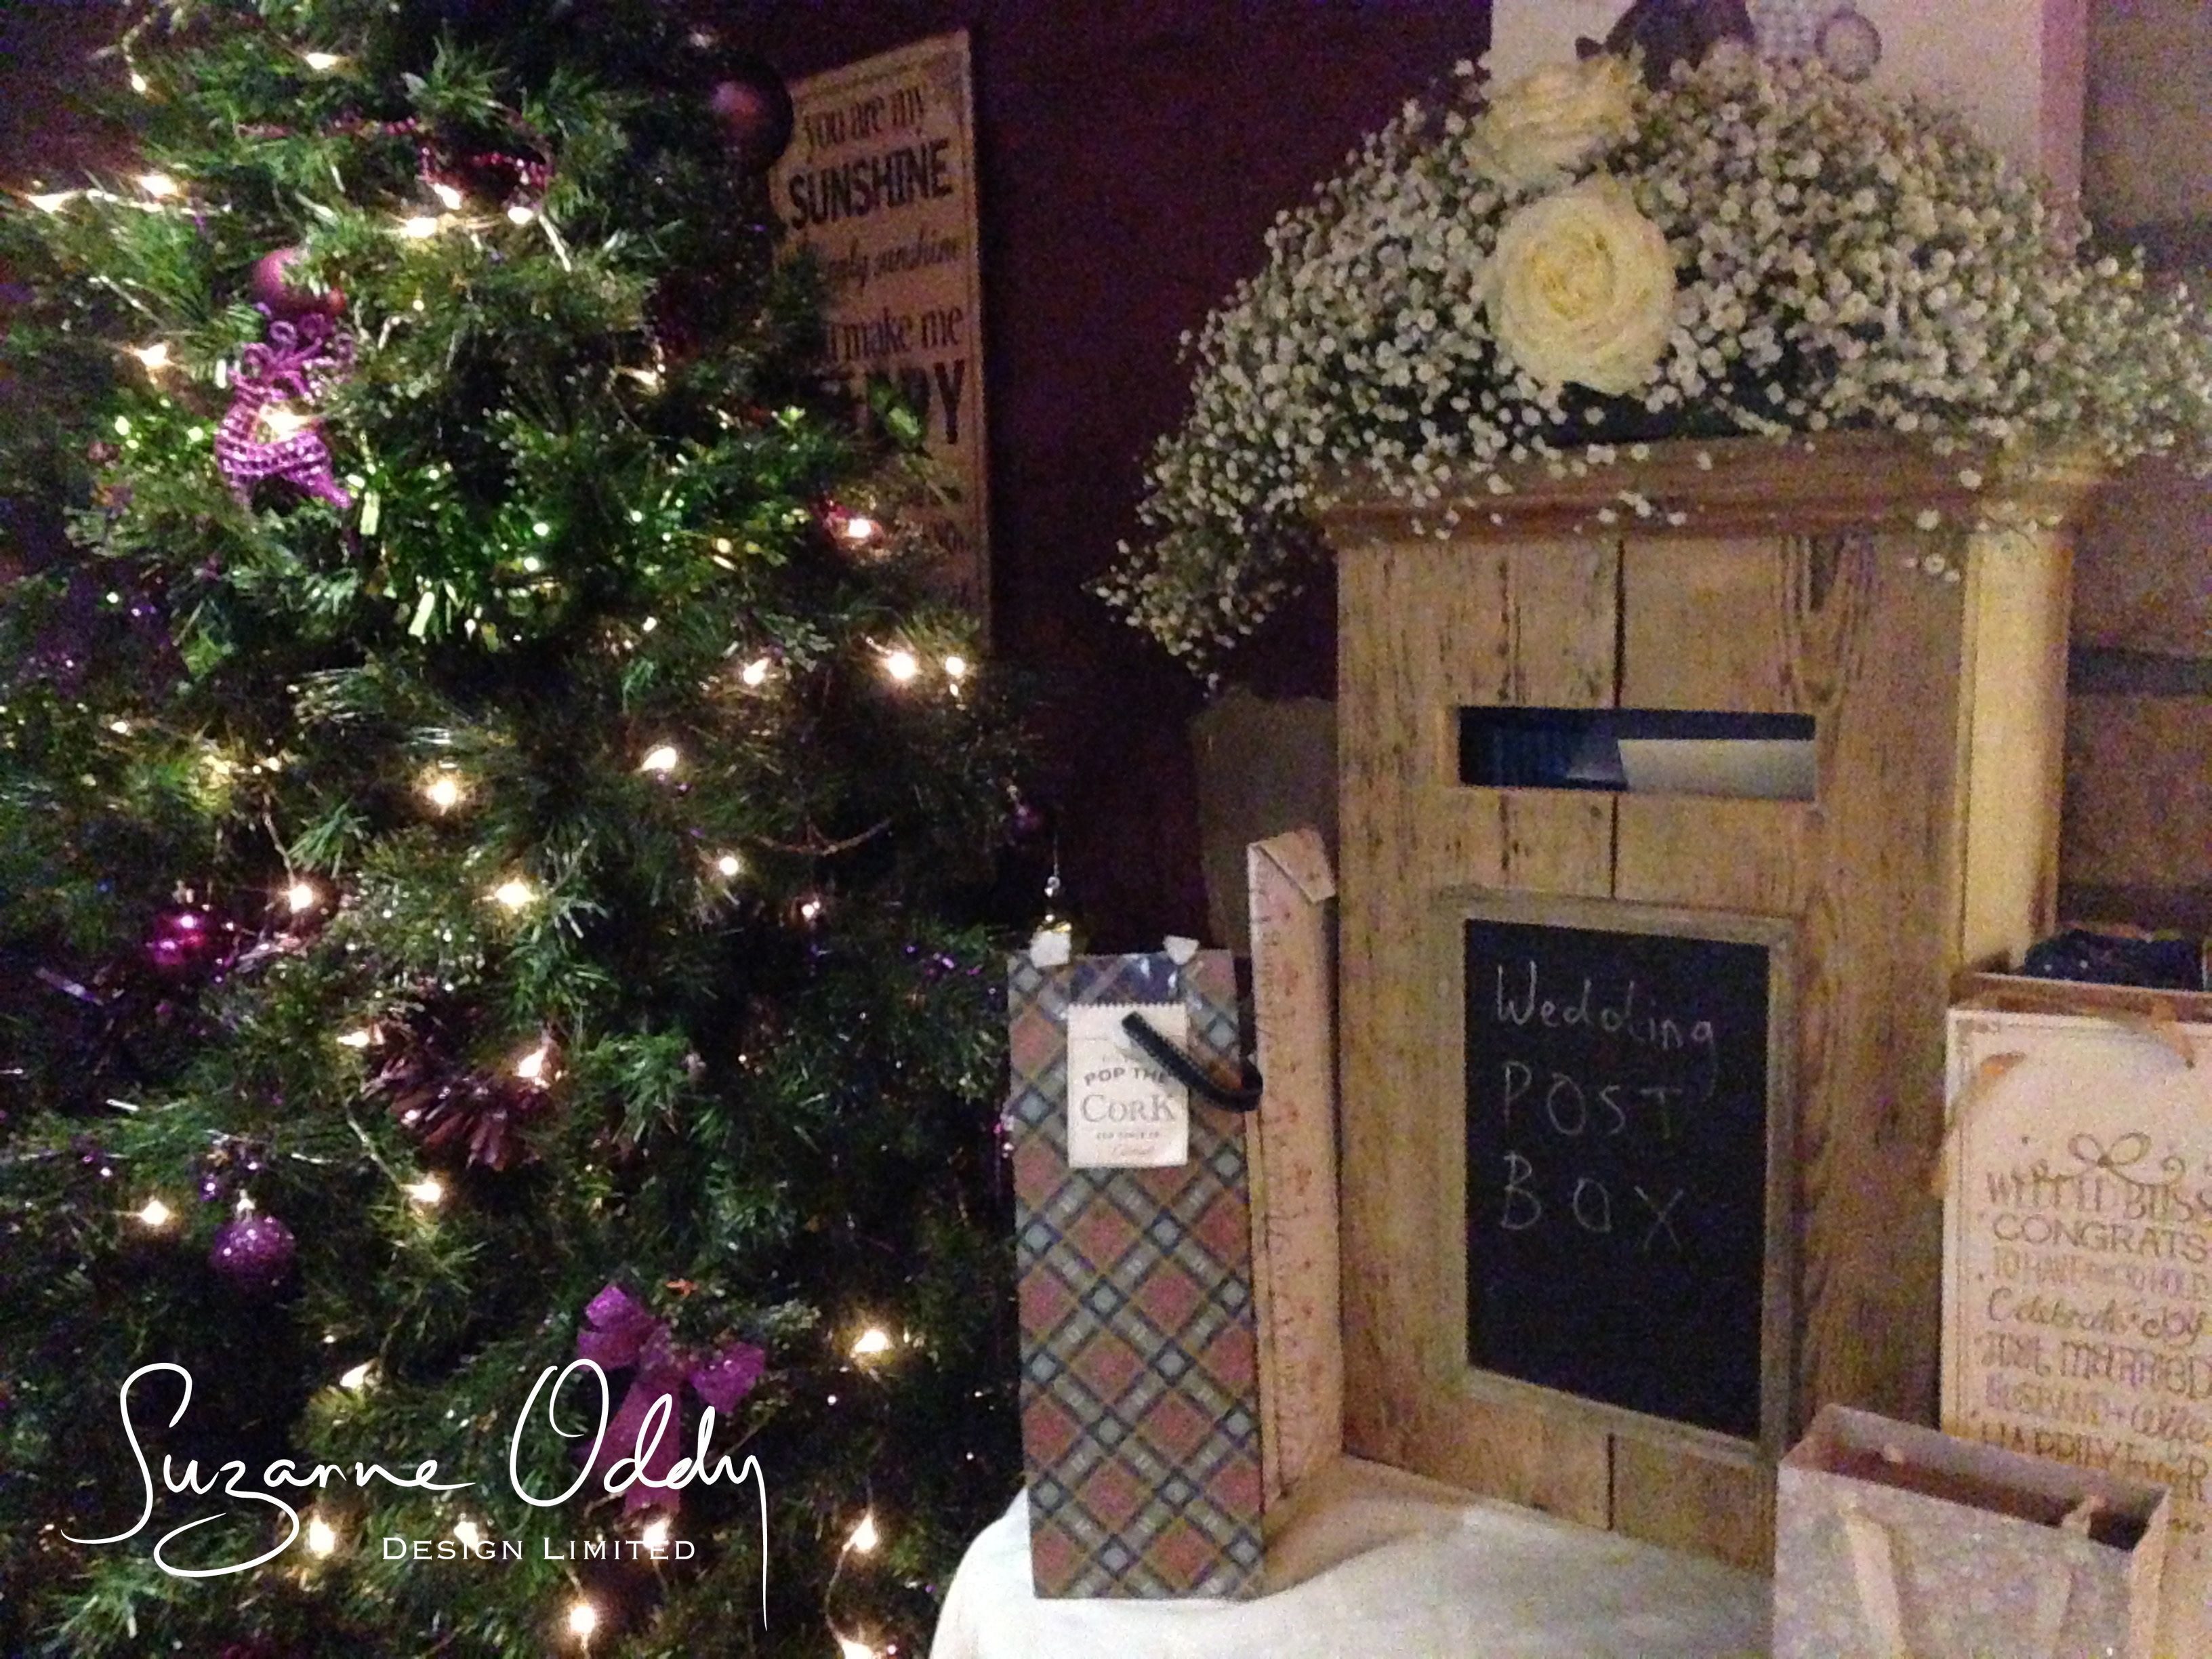 Wedding post box decorations  Hire my chunky wooden post box  Inspiring Decor for an imaginative